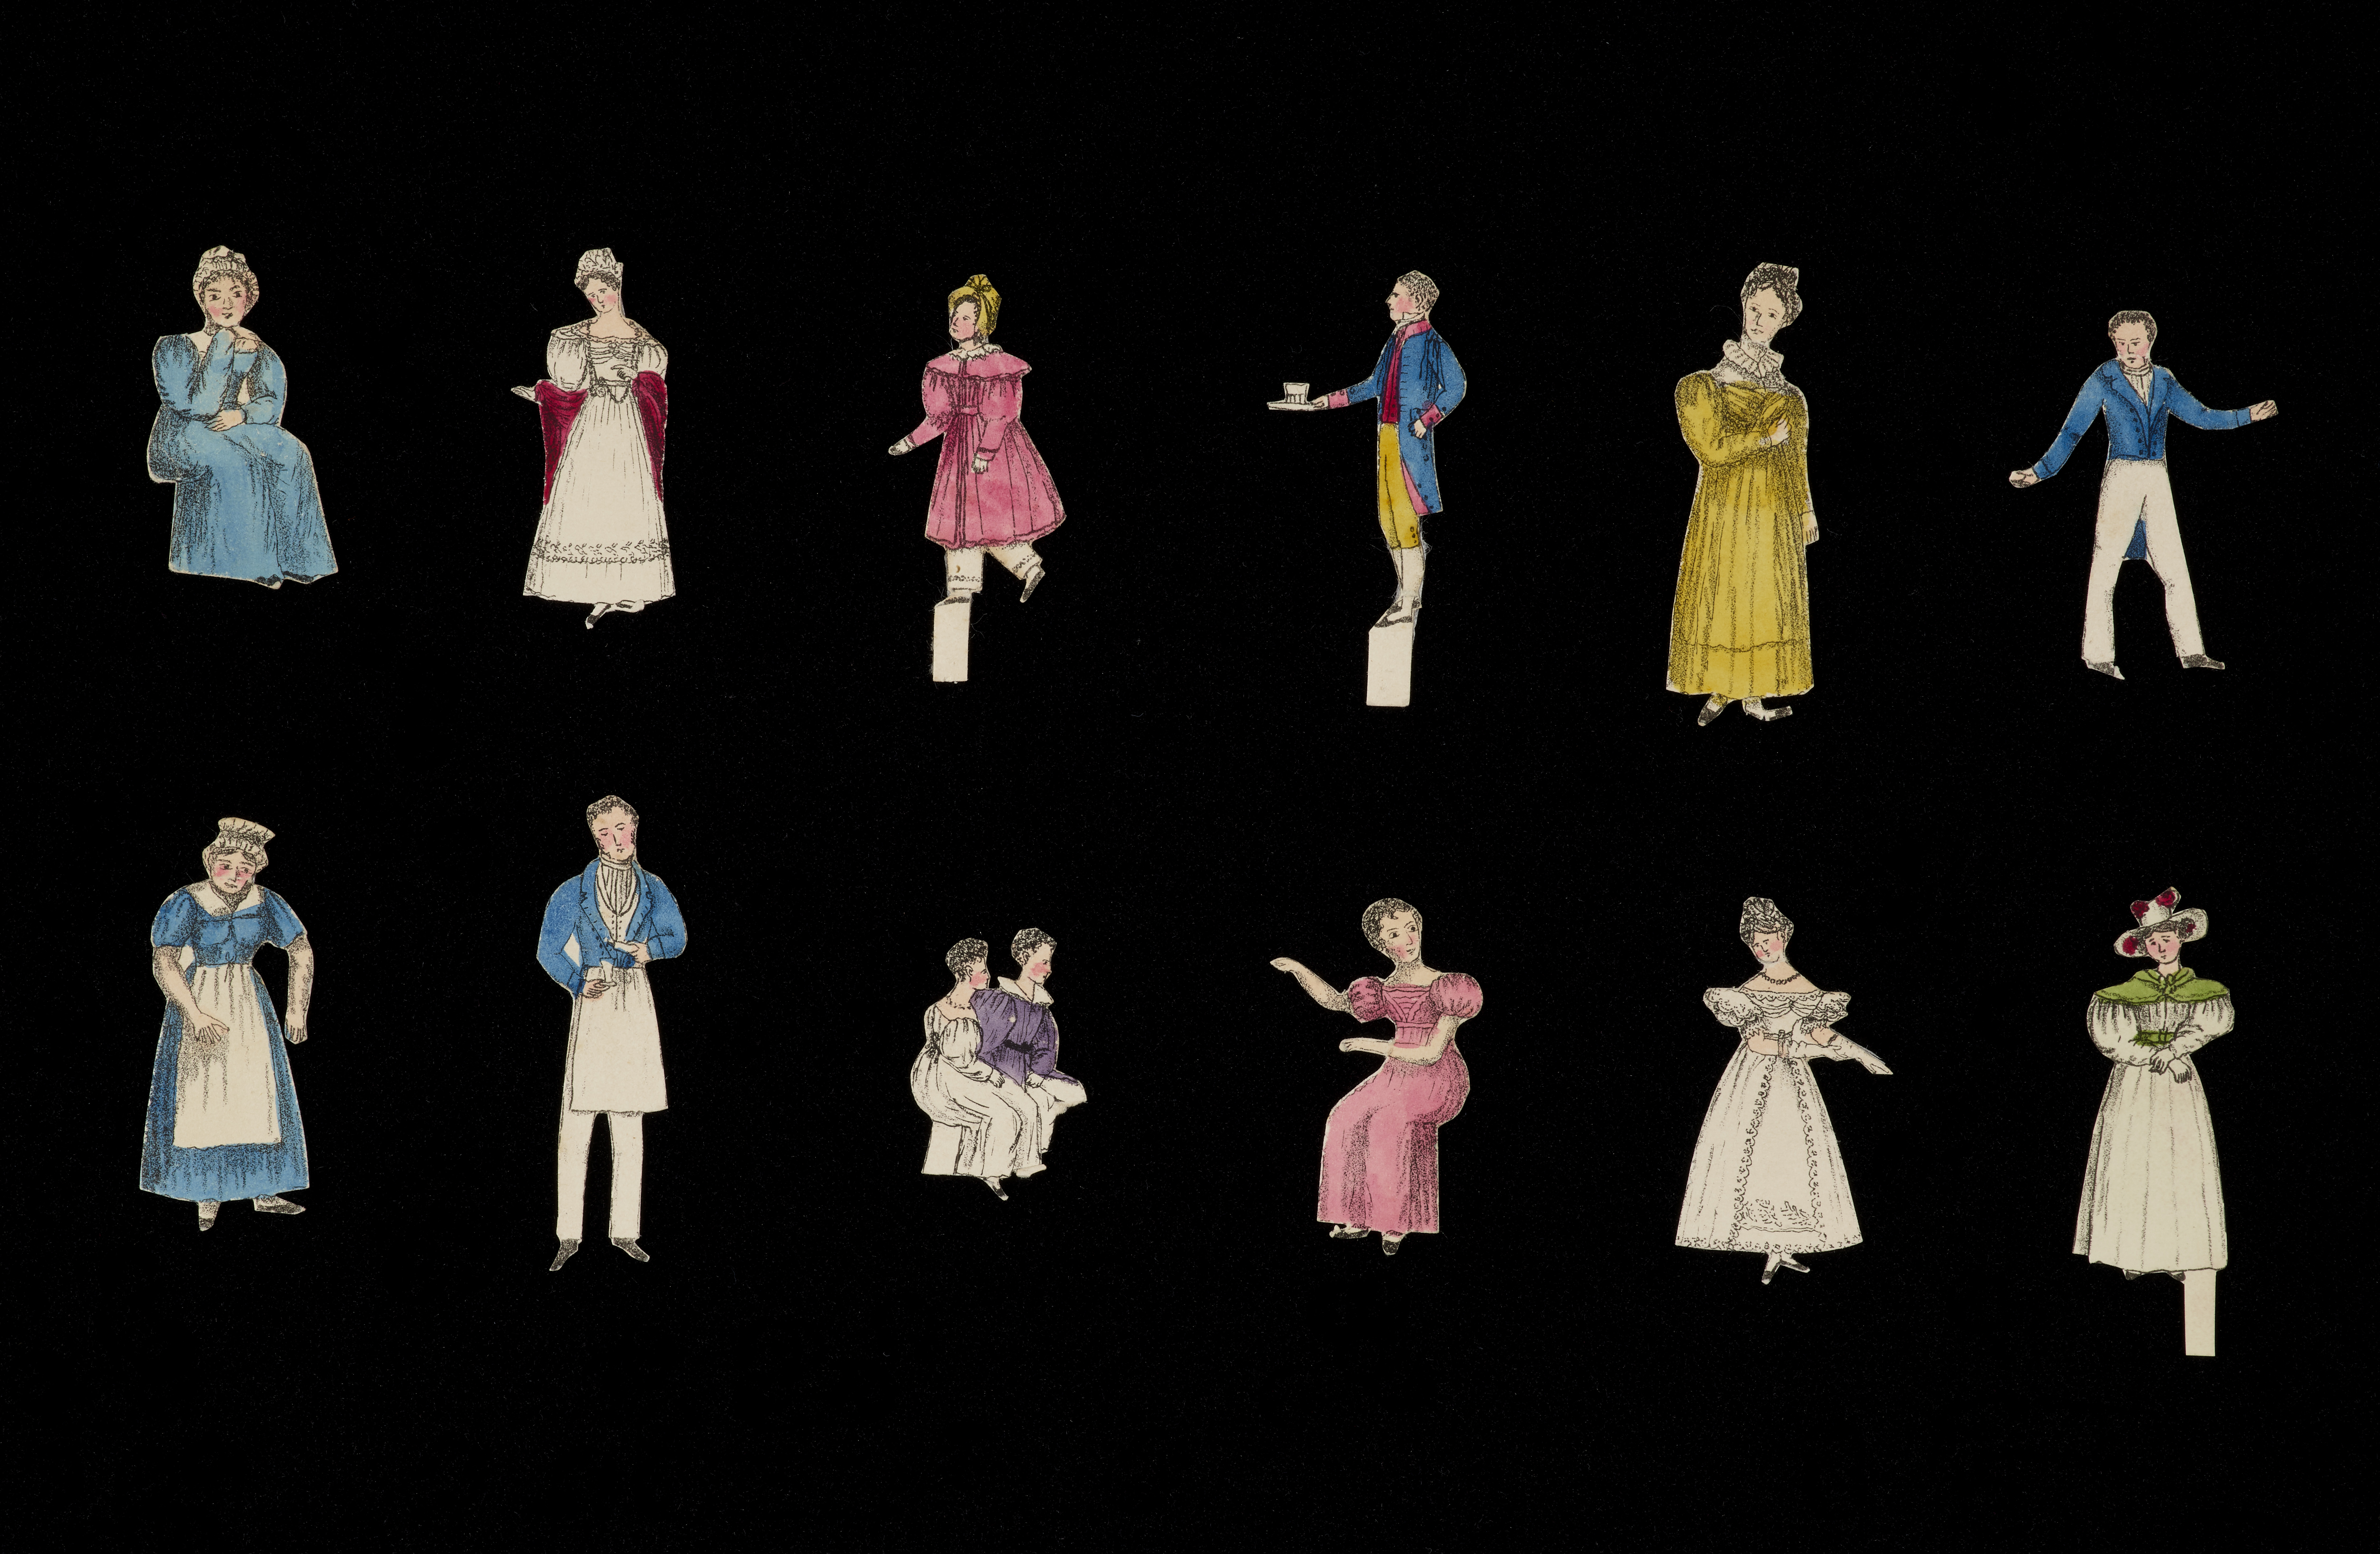 A selection of cut out cardboard figures of people, from women in rich dresses, to butlers and maids